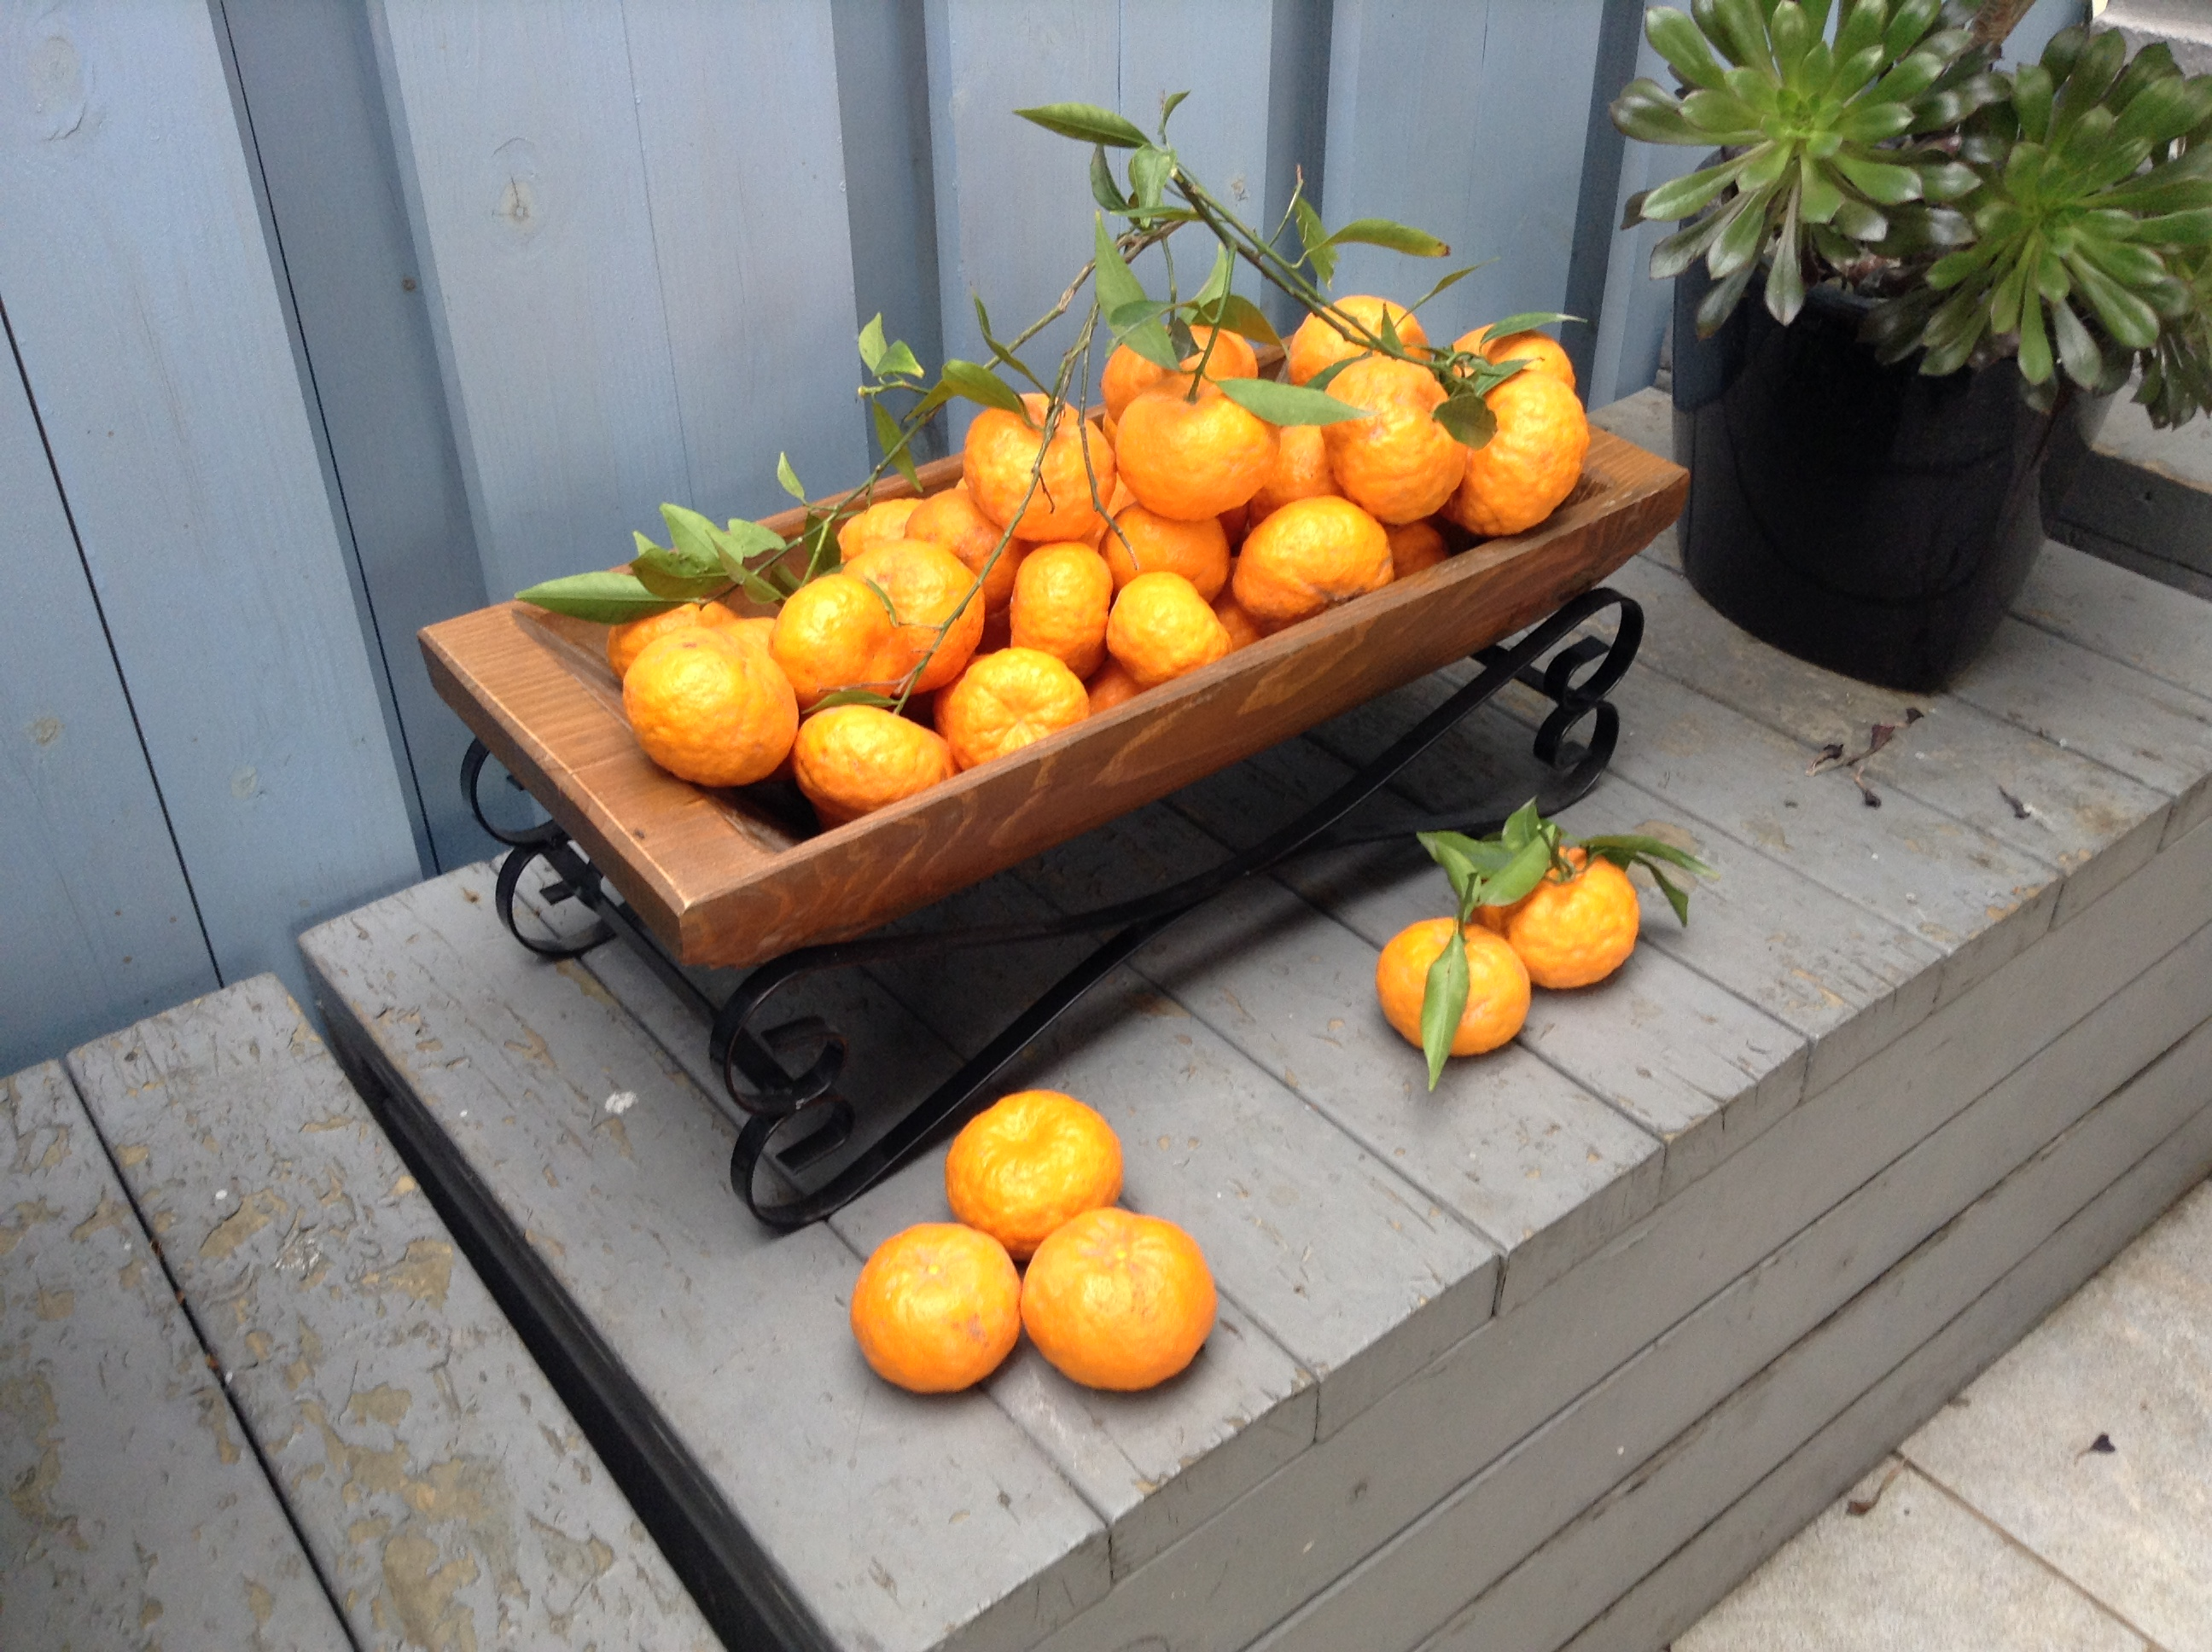 Hand picked oranges for Food Lovers